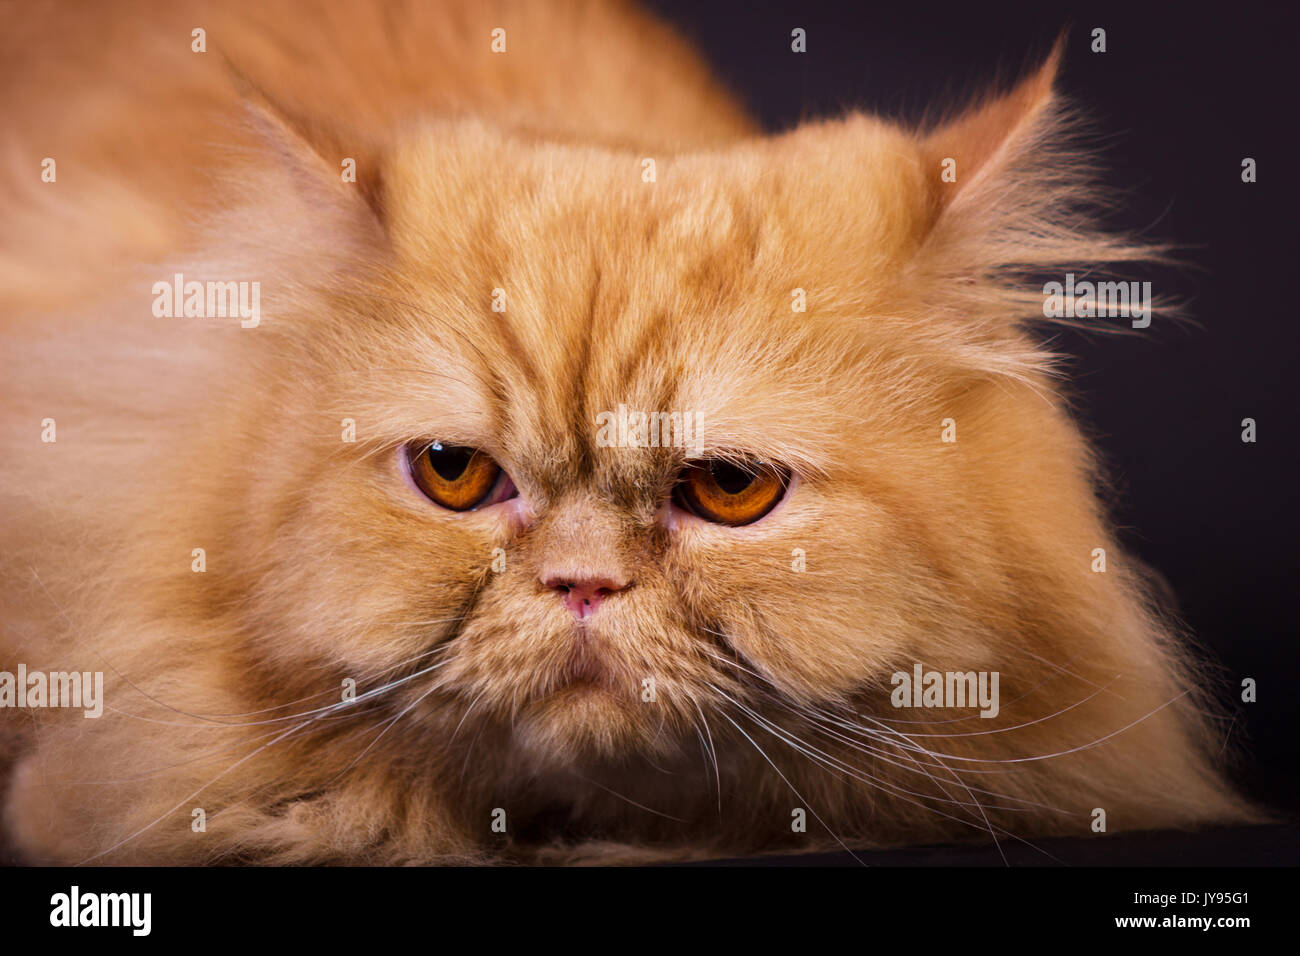 Orange persian cat on black background looking in camera Stock